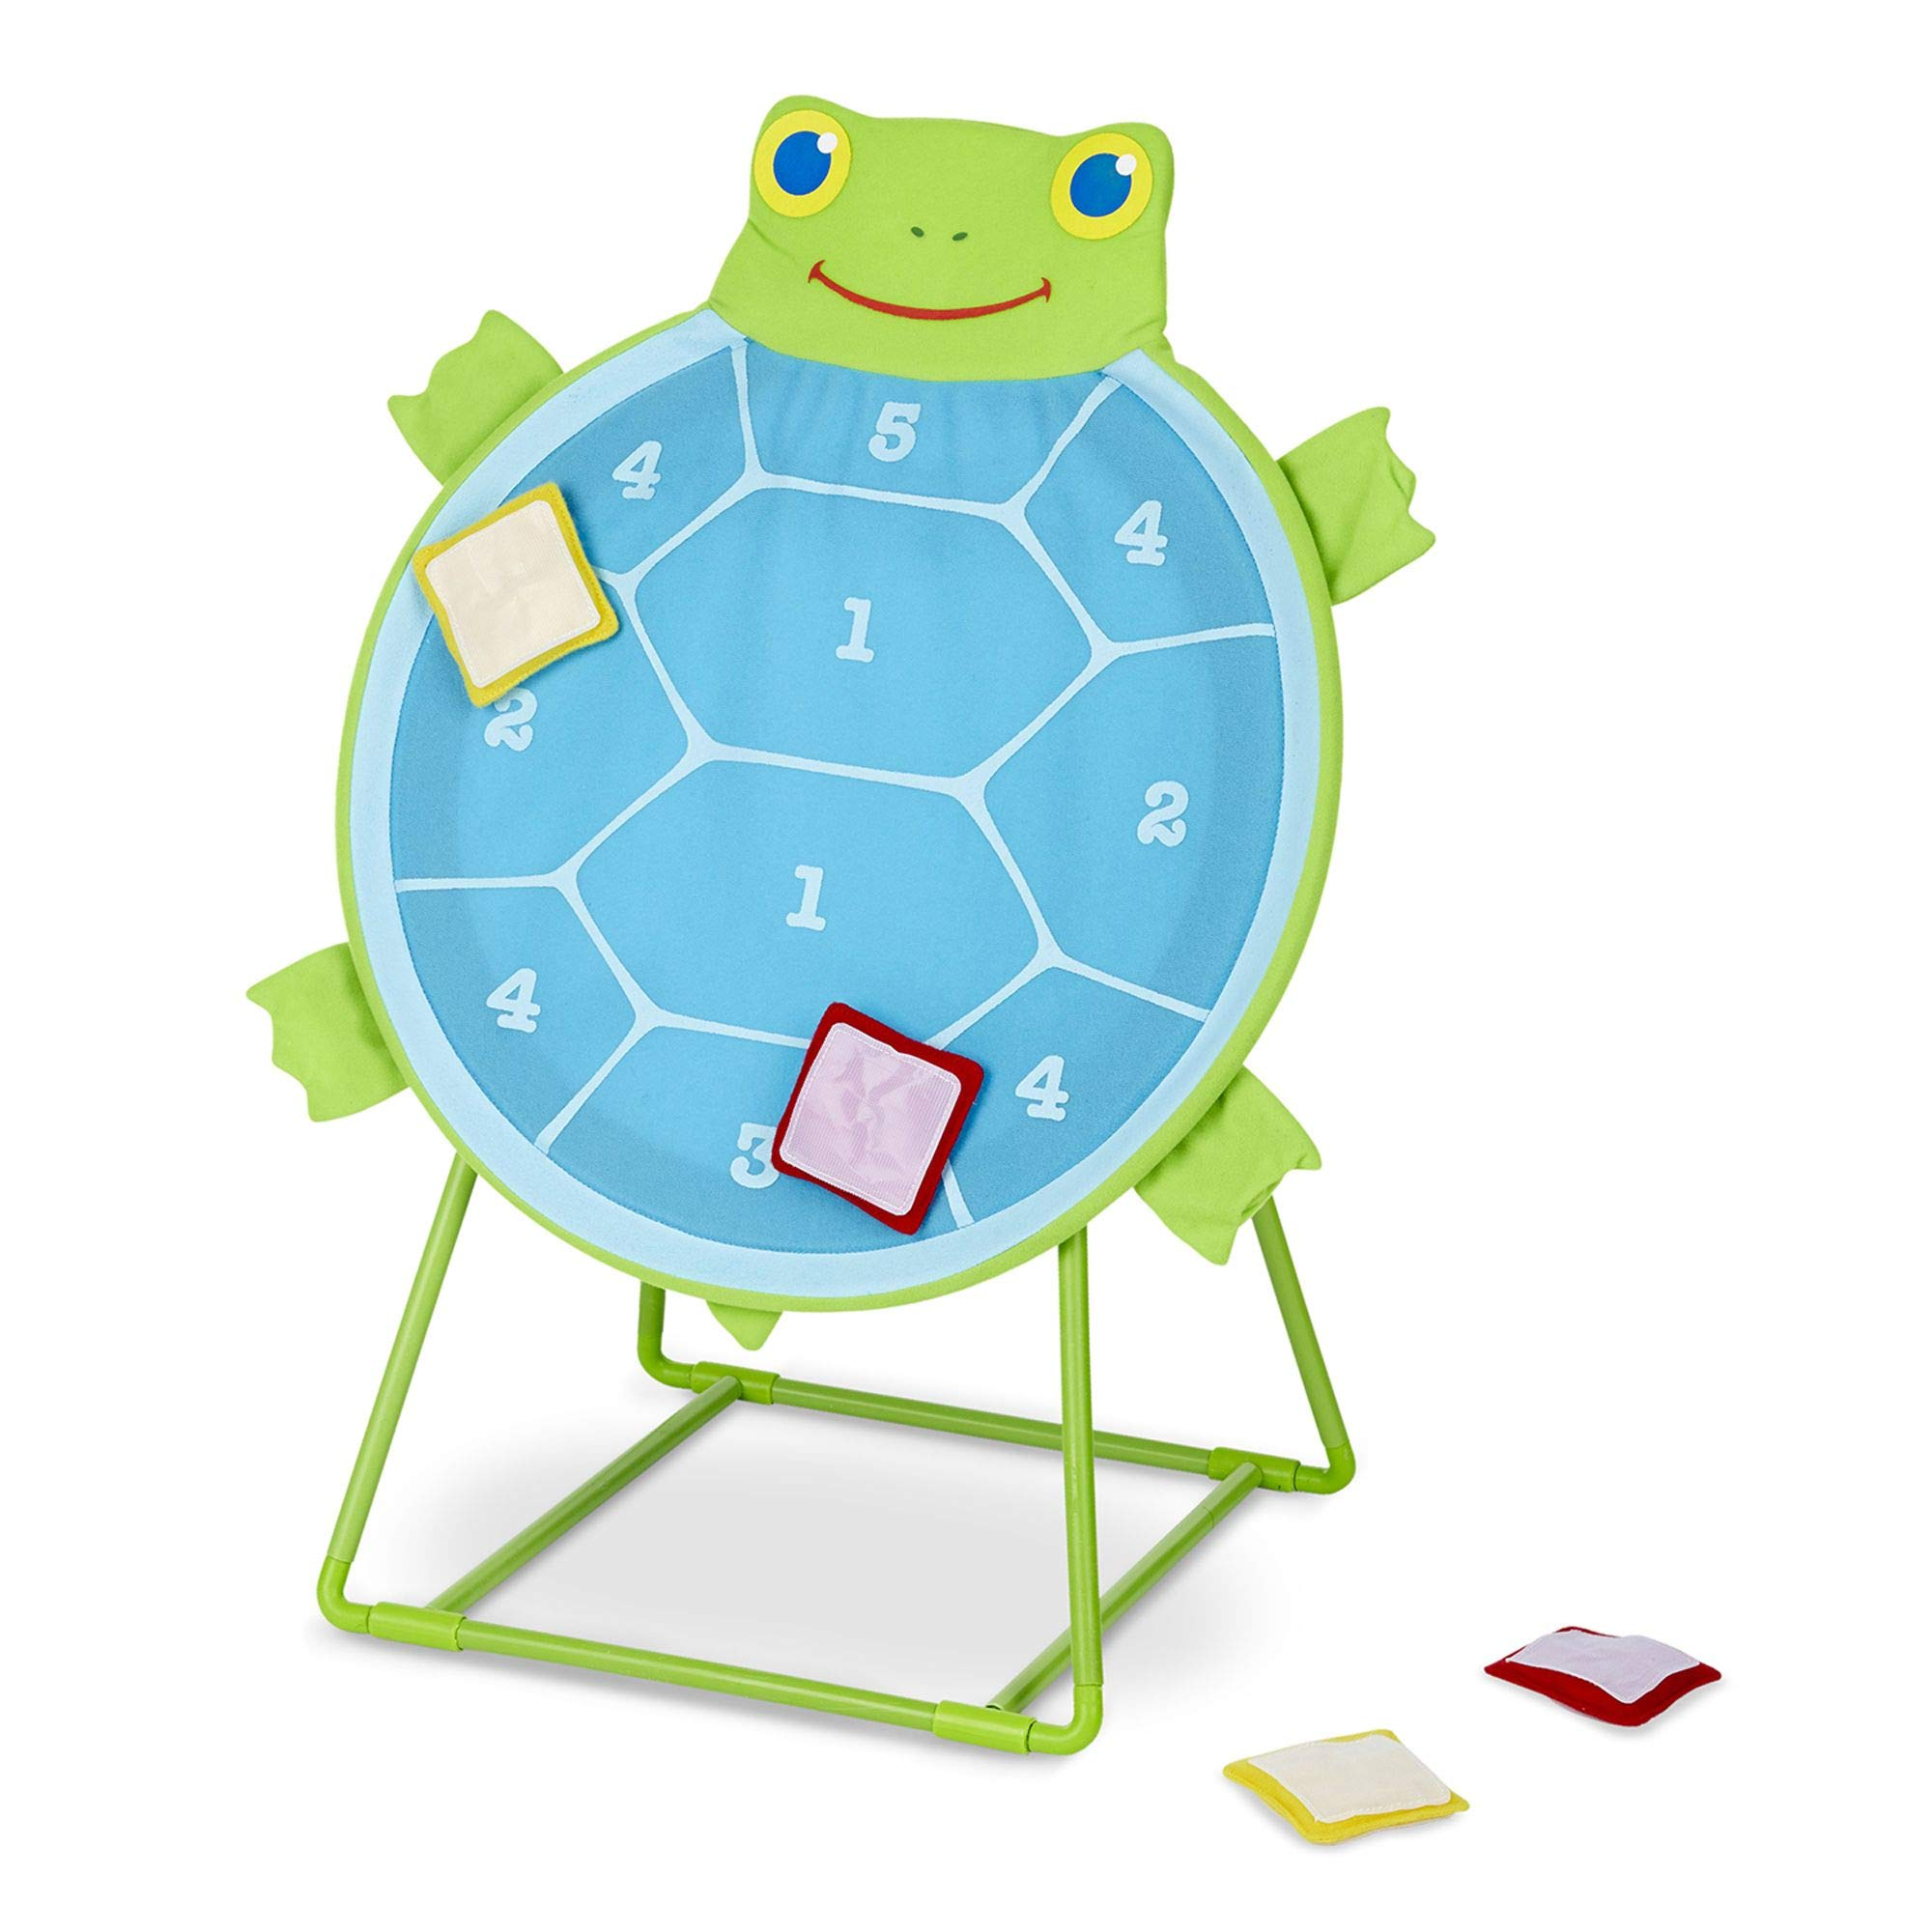 Melissa & Doug Sunny Patch Dilly Dally Tootle Turtle Target Game, Active Play & Outdoor, Two Color Bean Bags, Self-Sticking Bean Bags, 22'' H x 14.7'' W x 2'' L